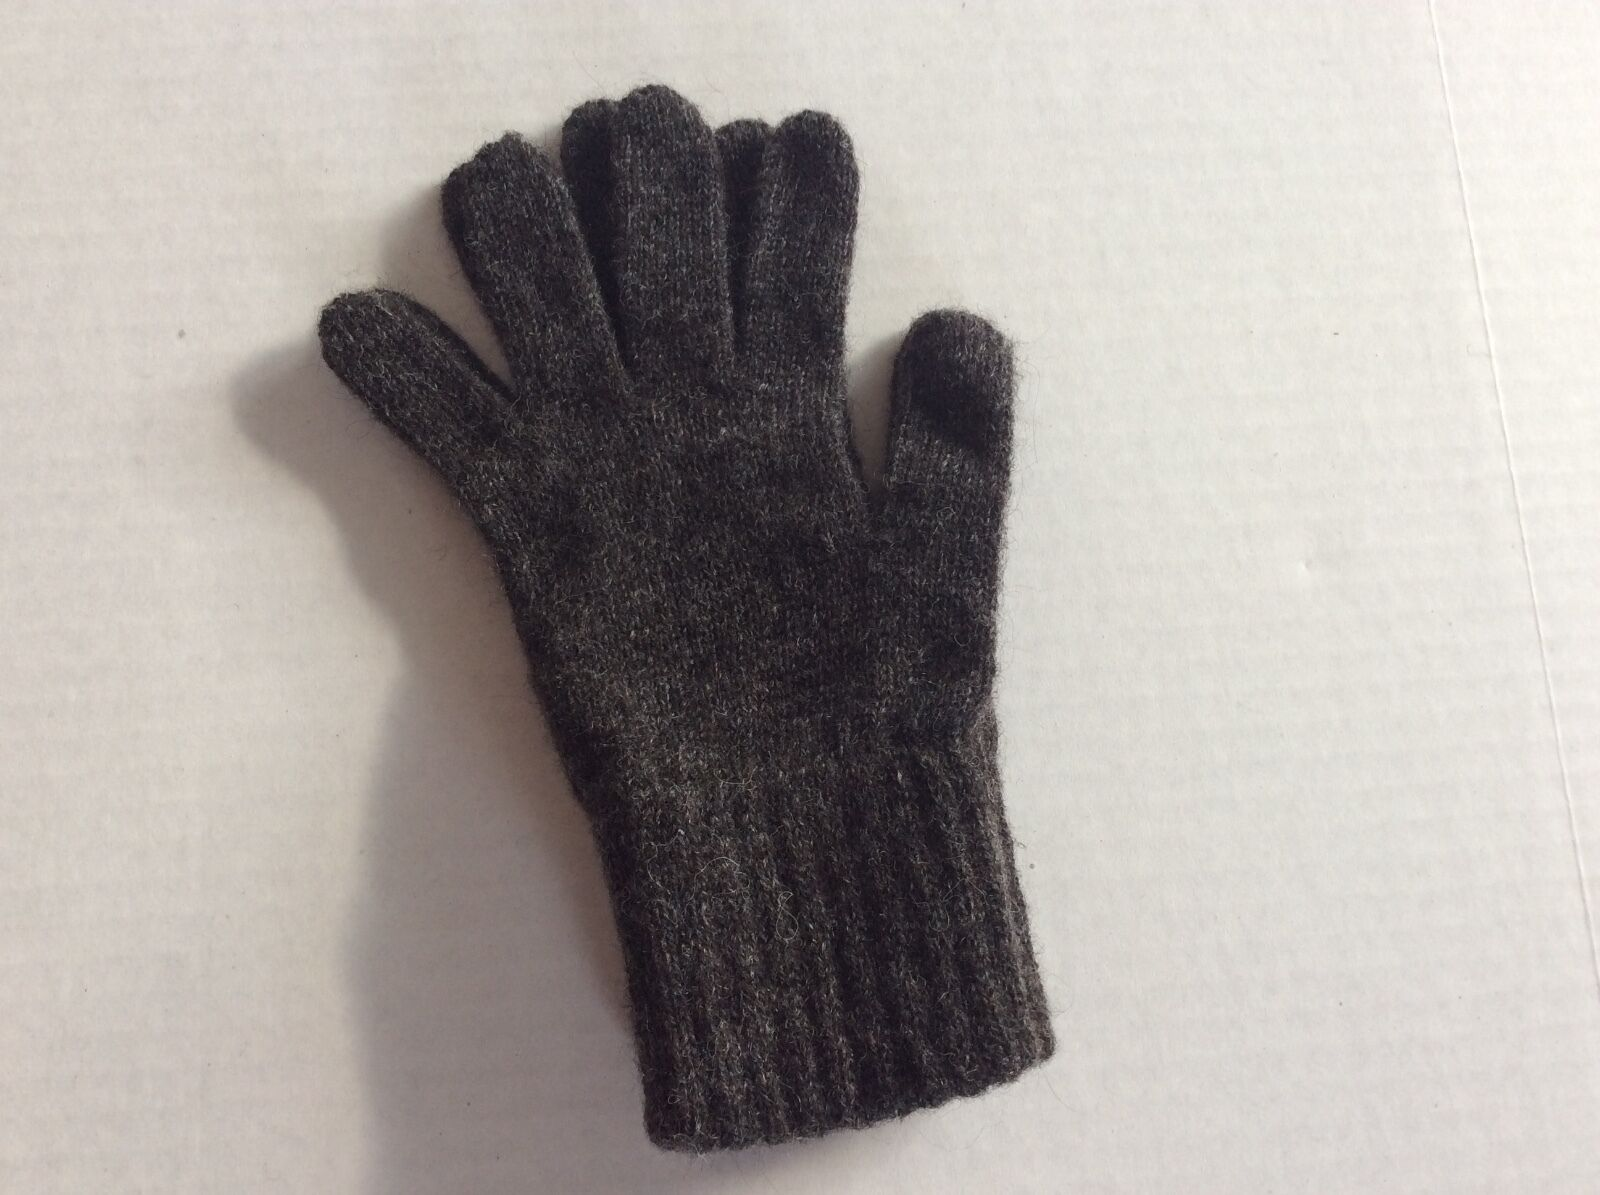 NEAFP Alpaca All Terrain Gloves, SIZE M -Gray-Made USA-NEW without Tag